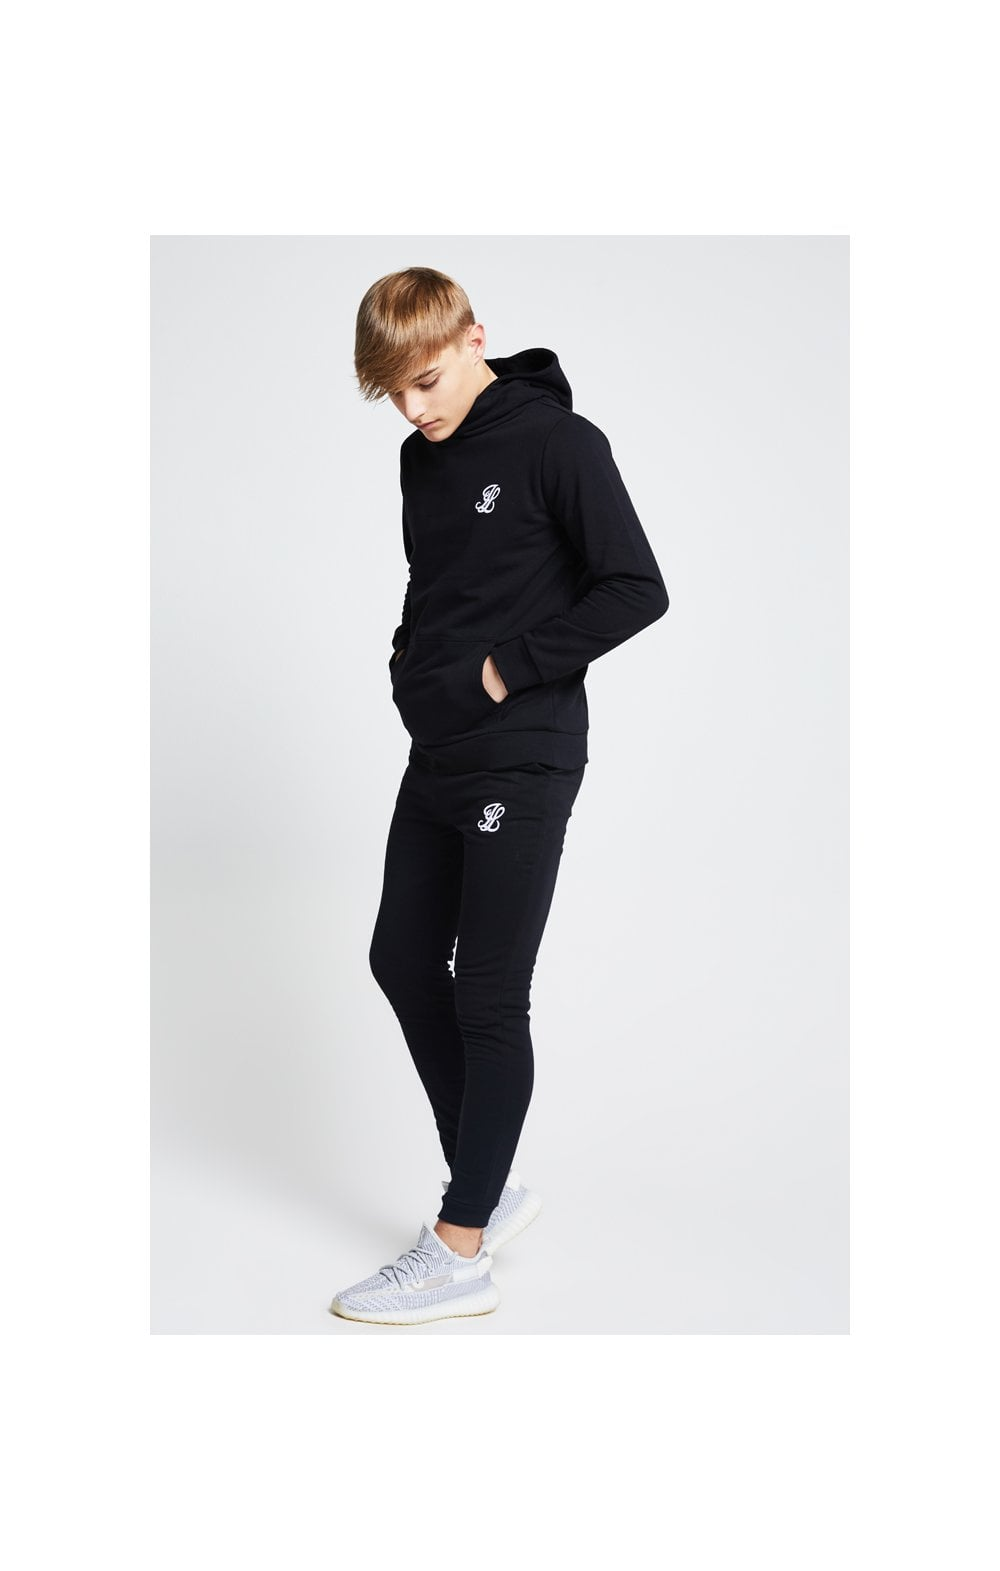 Illusive London Sudadera con Capucha - Negro (4)